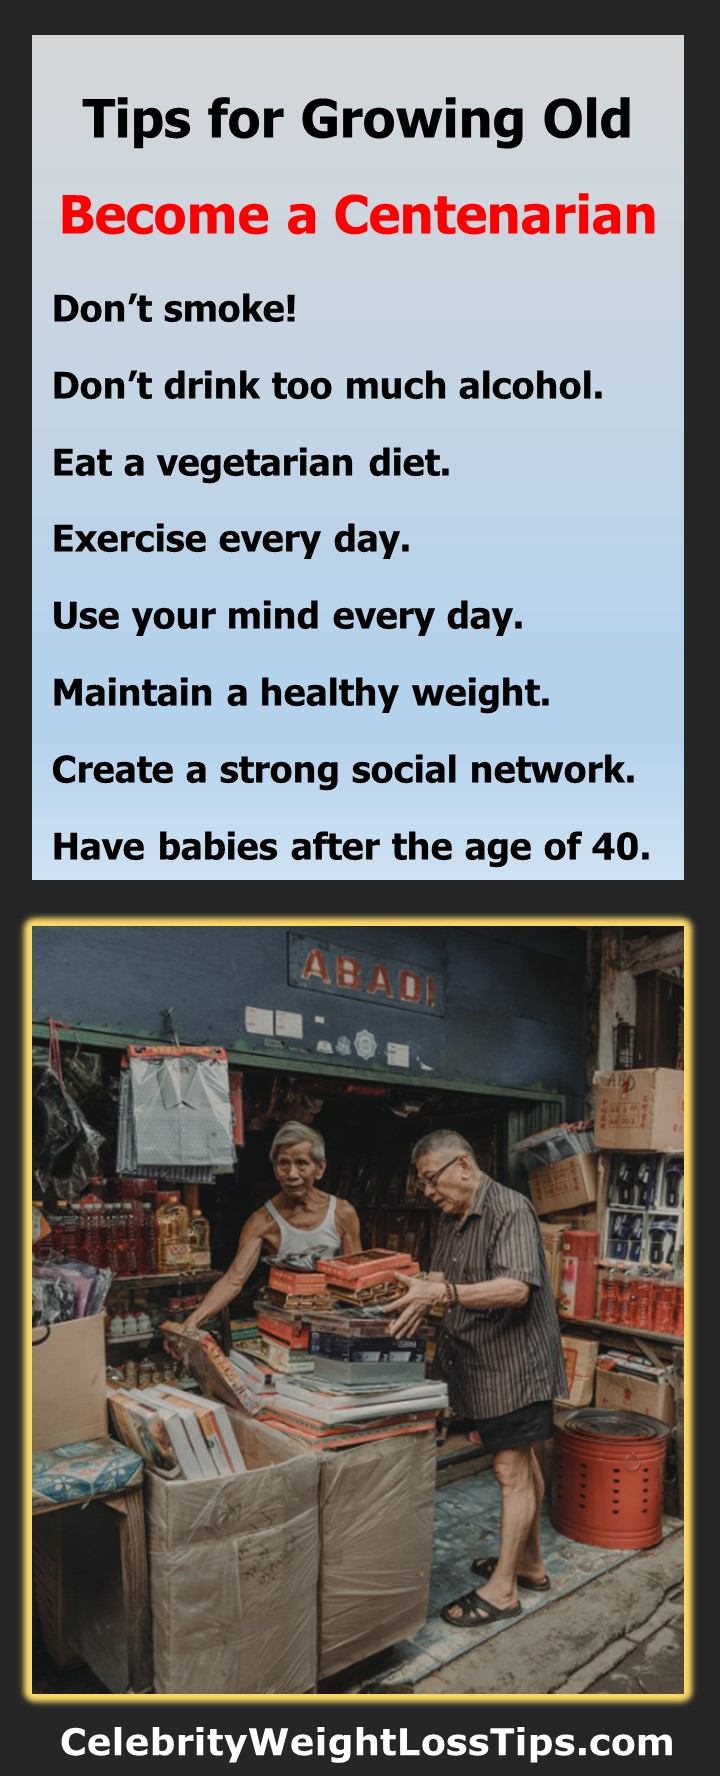 Tips for Growing Old: How to Become a Centenarian: Don't smoke. Don't drink too much. Eat a vegetarian diet. Exercise every day. Use your mind every day. Maintain a healthy weight. Create a strong social network.